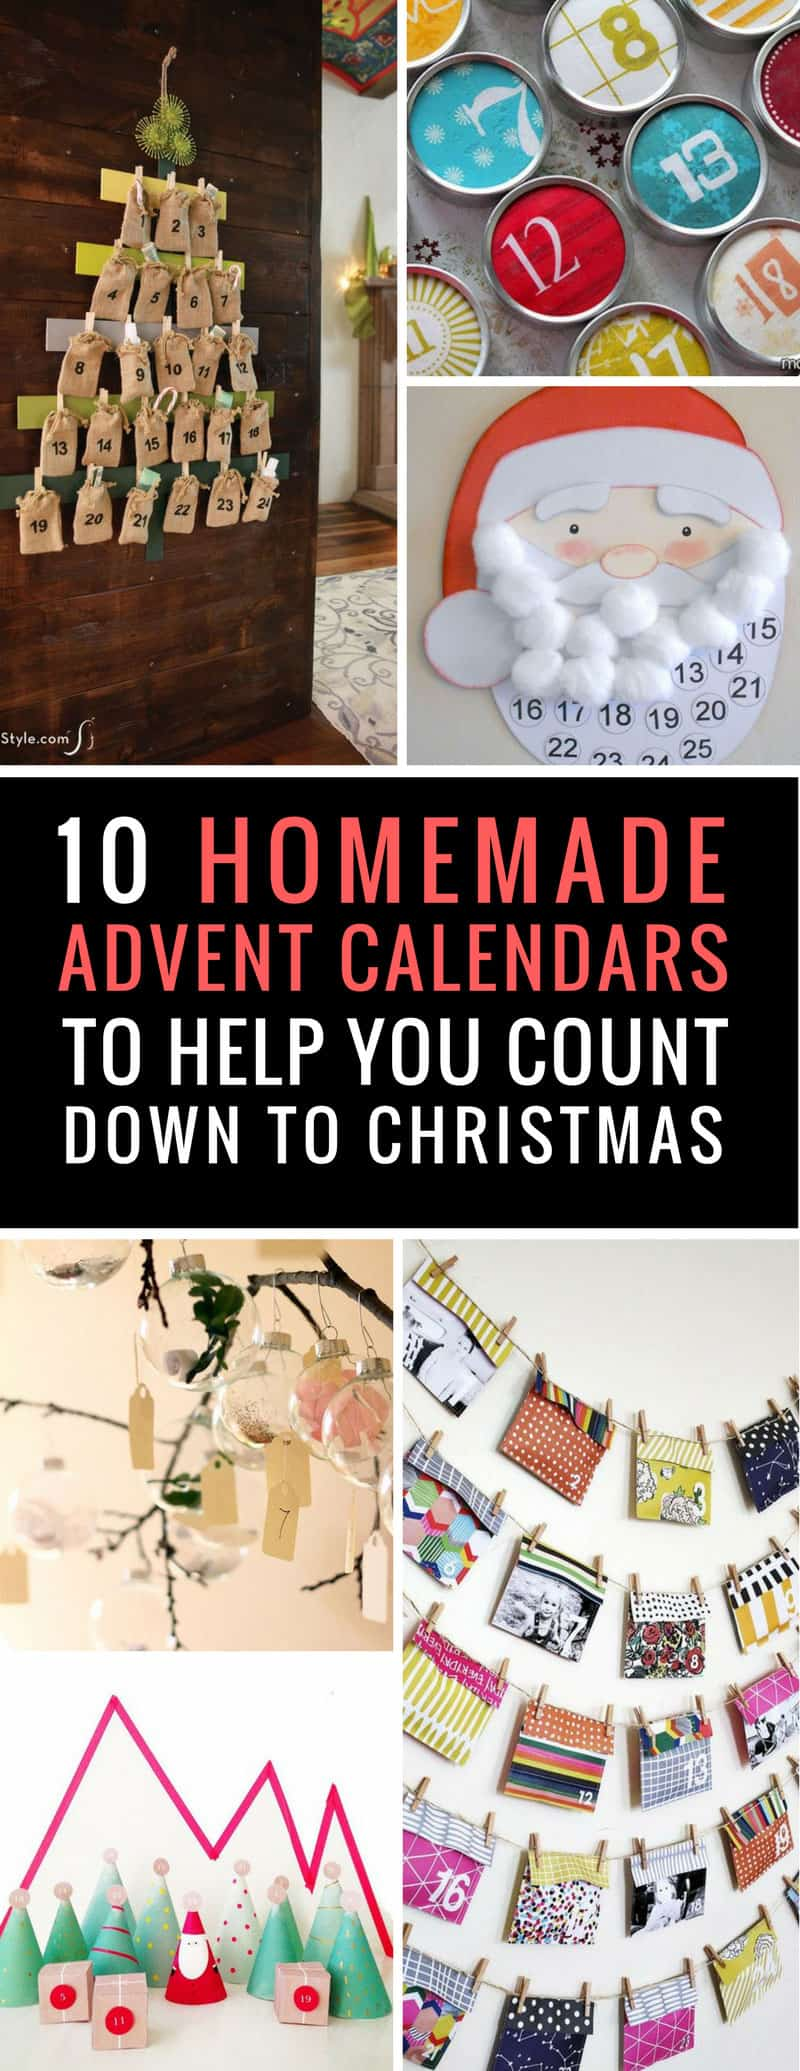 Looking for easy advent calendars to make at home? These DIY calendars are simple to make and can be used over and over for years to come! | DIY advent calendar | Christmas crafts | Just Bright Ideas